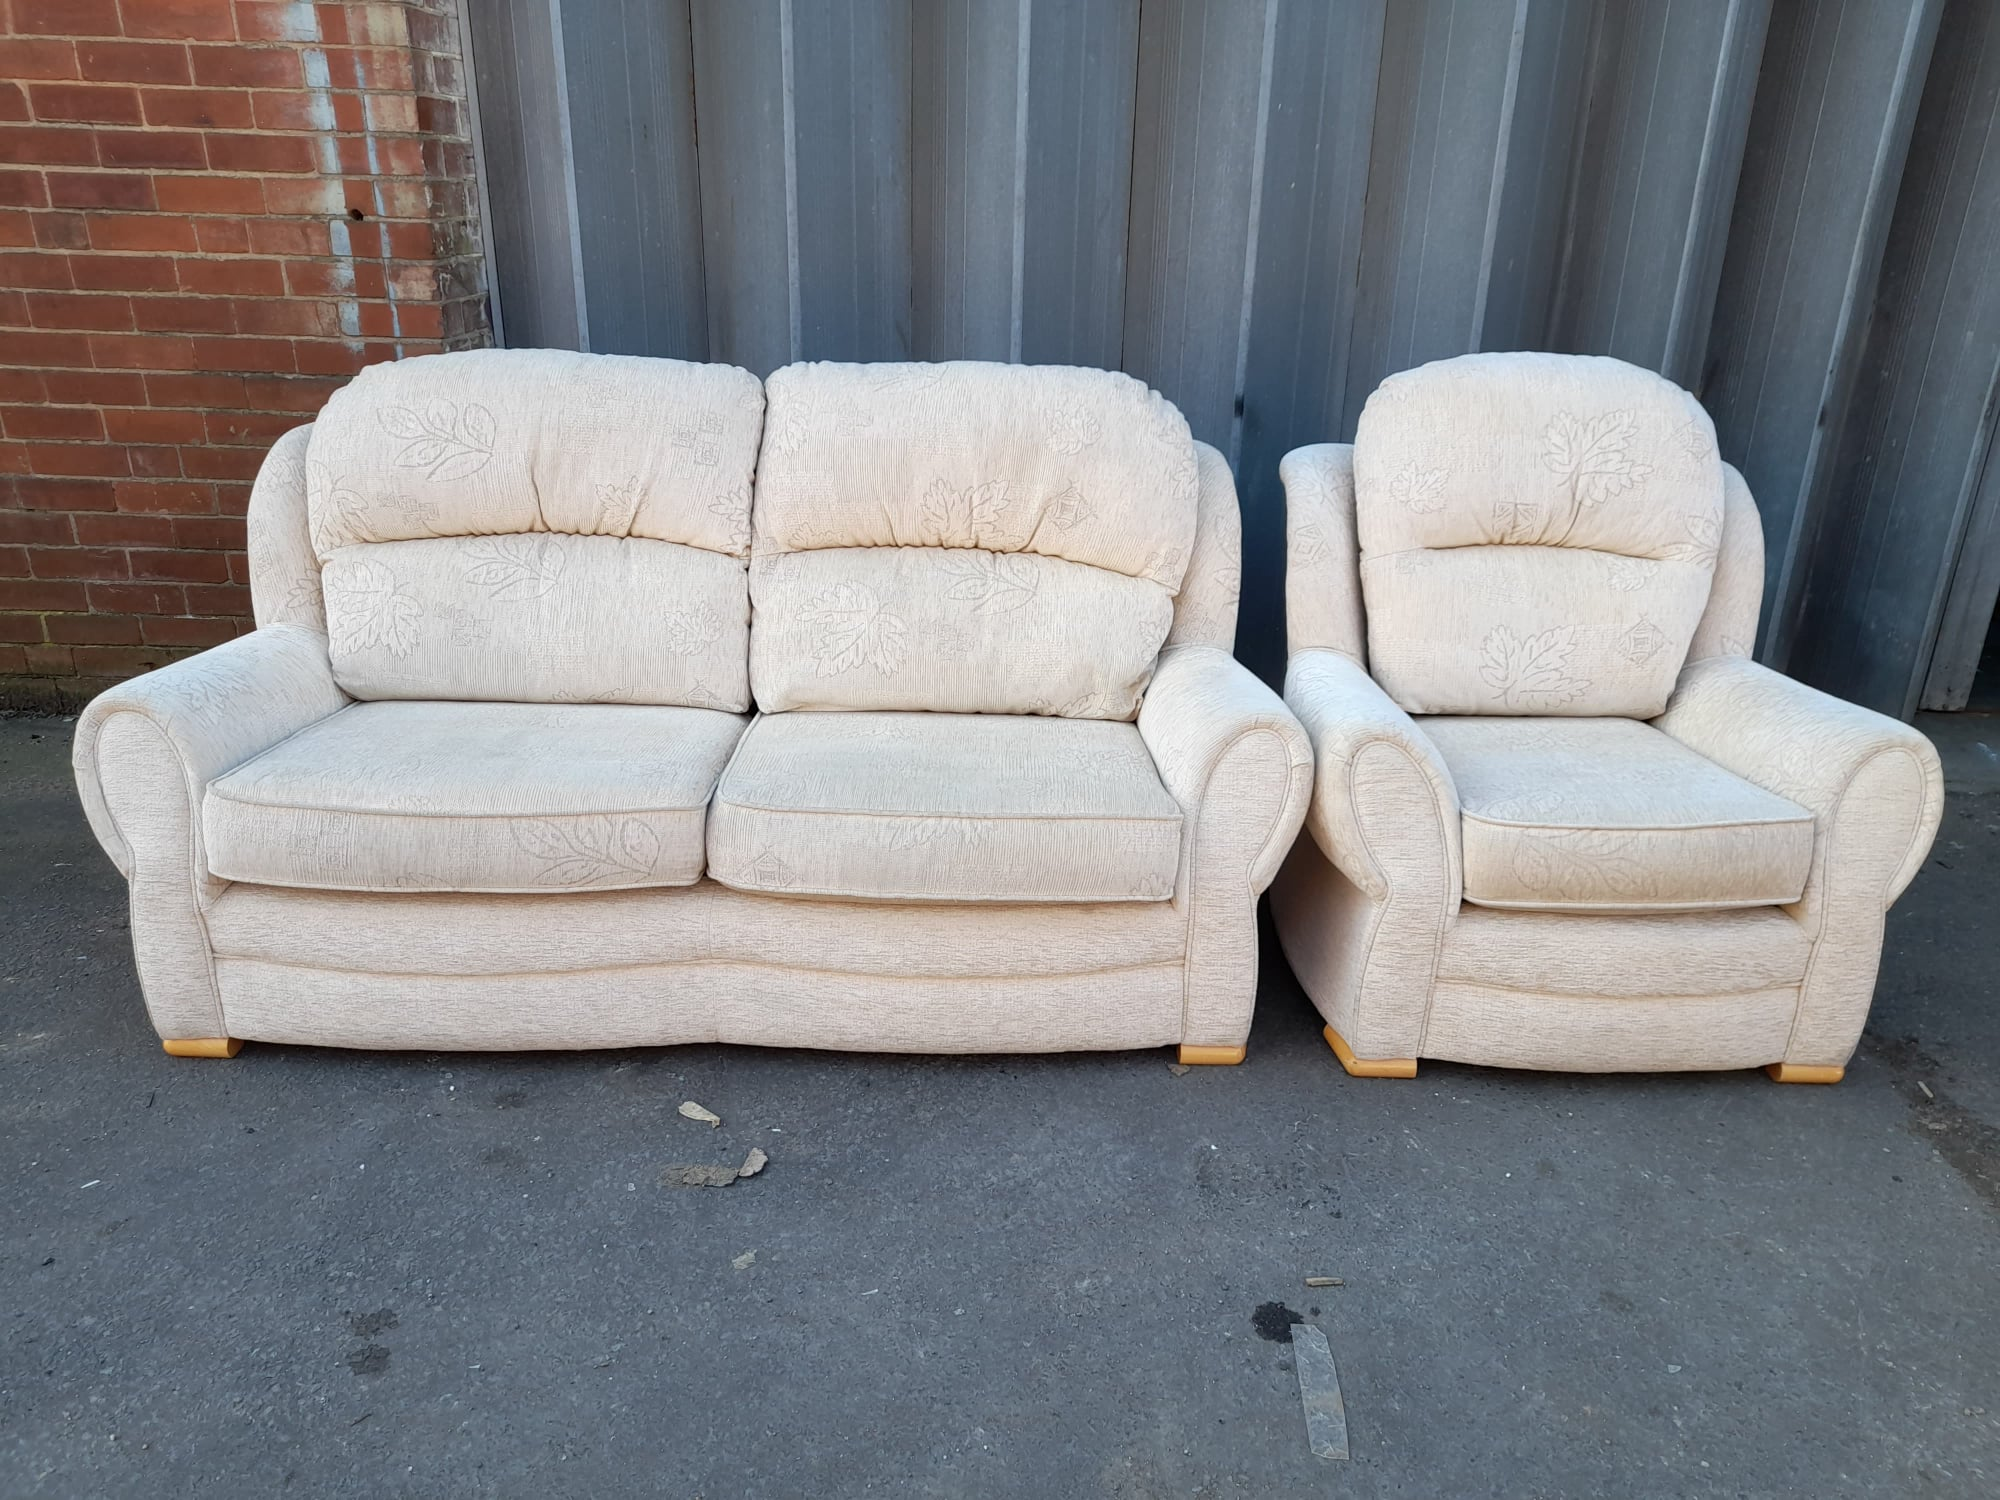 SOFA AND CHAIR £140